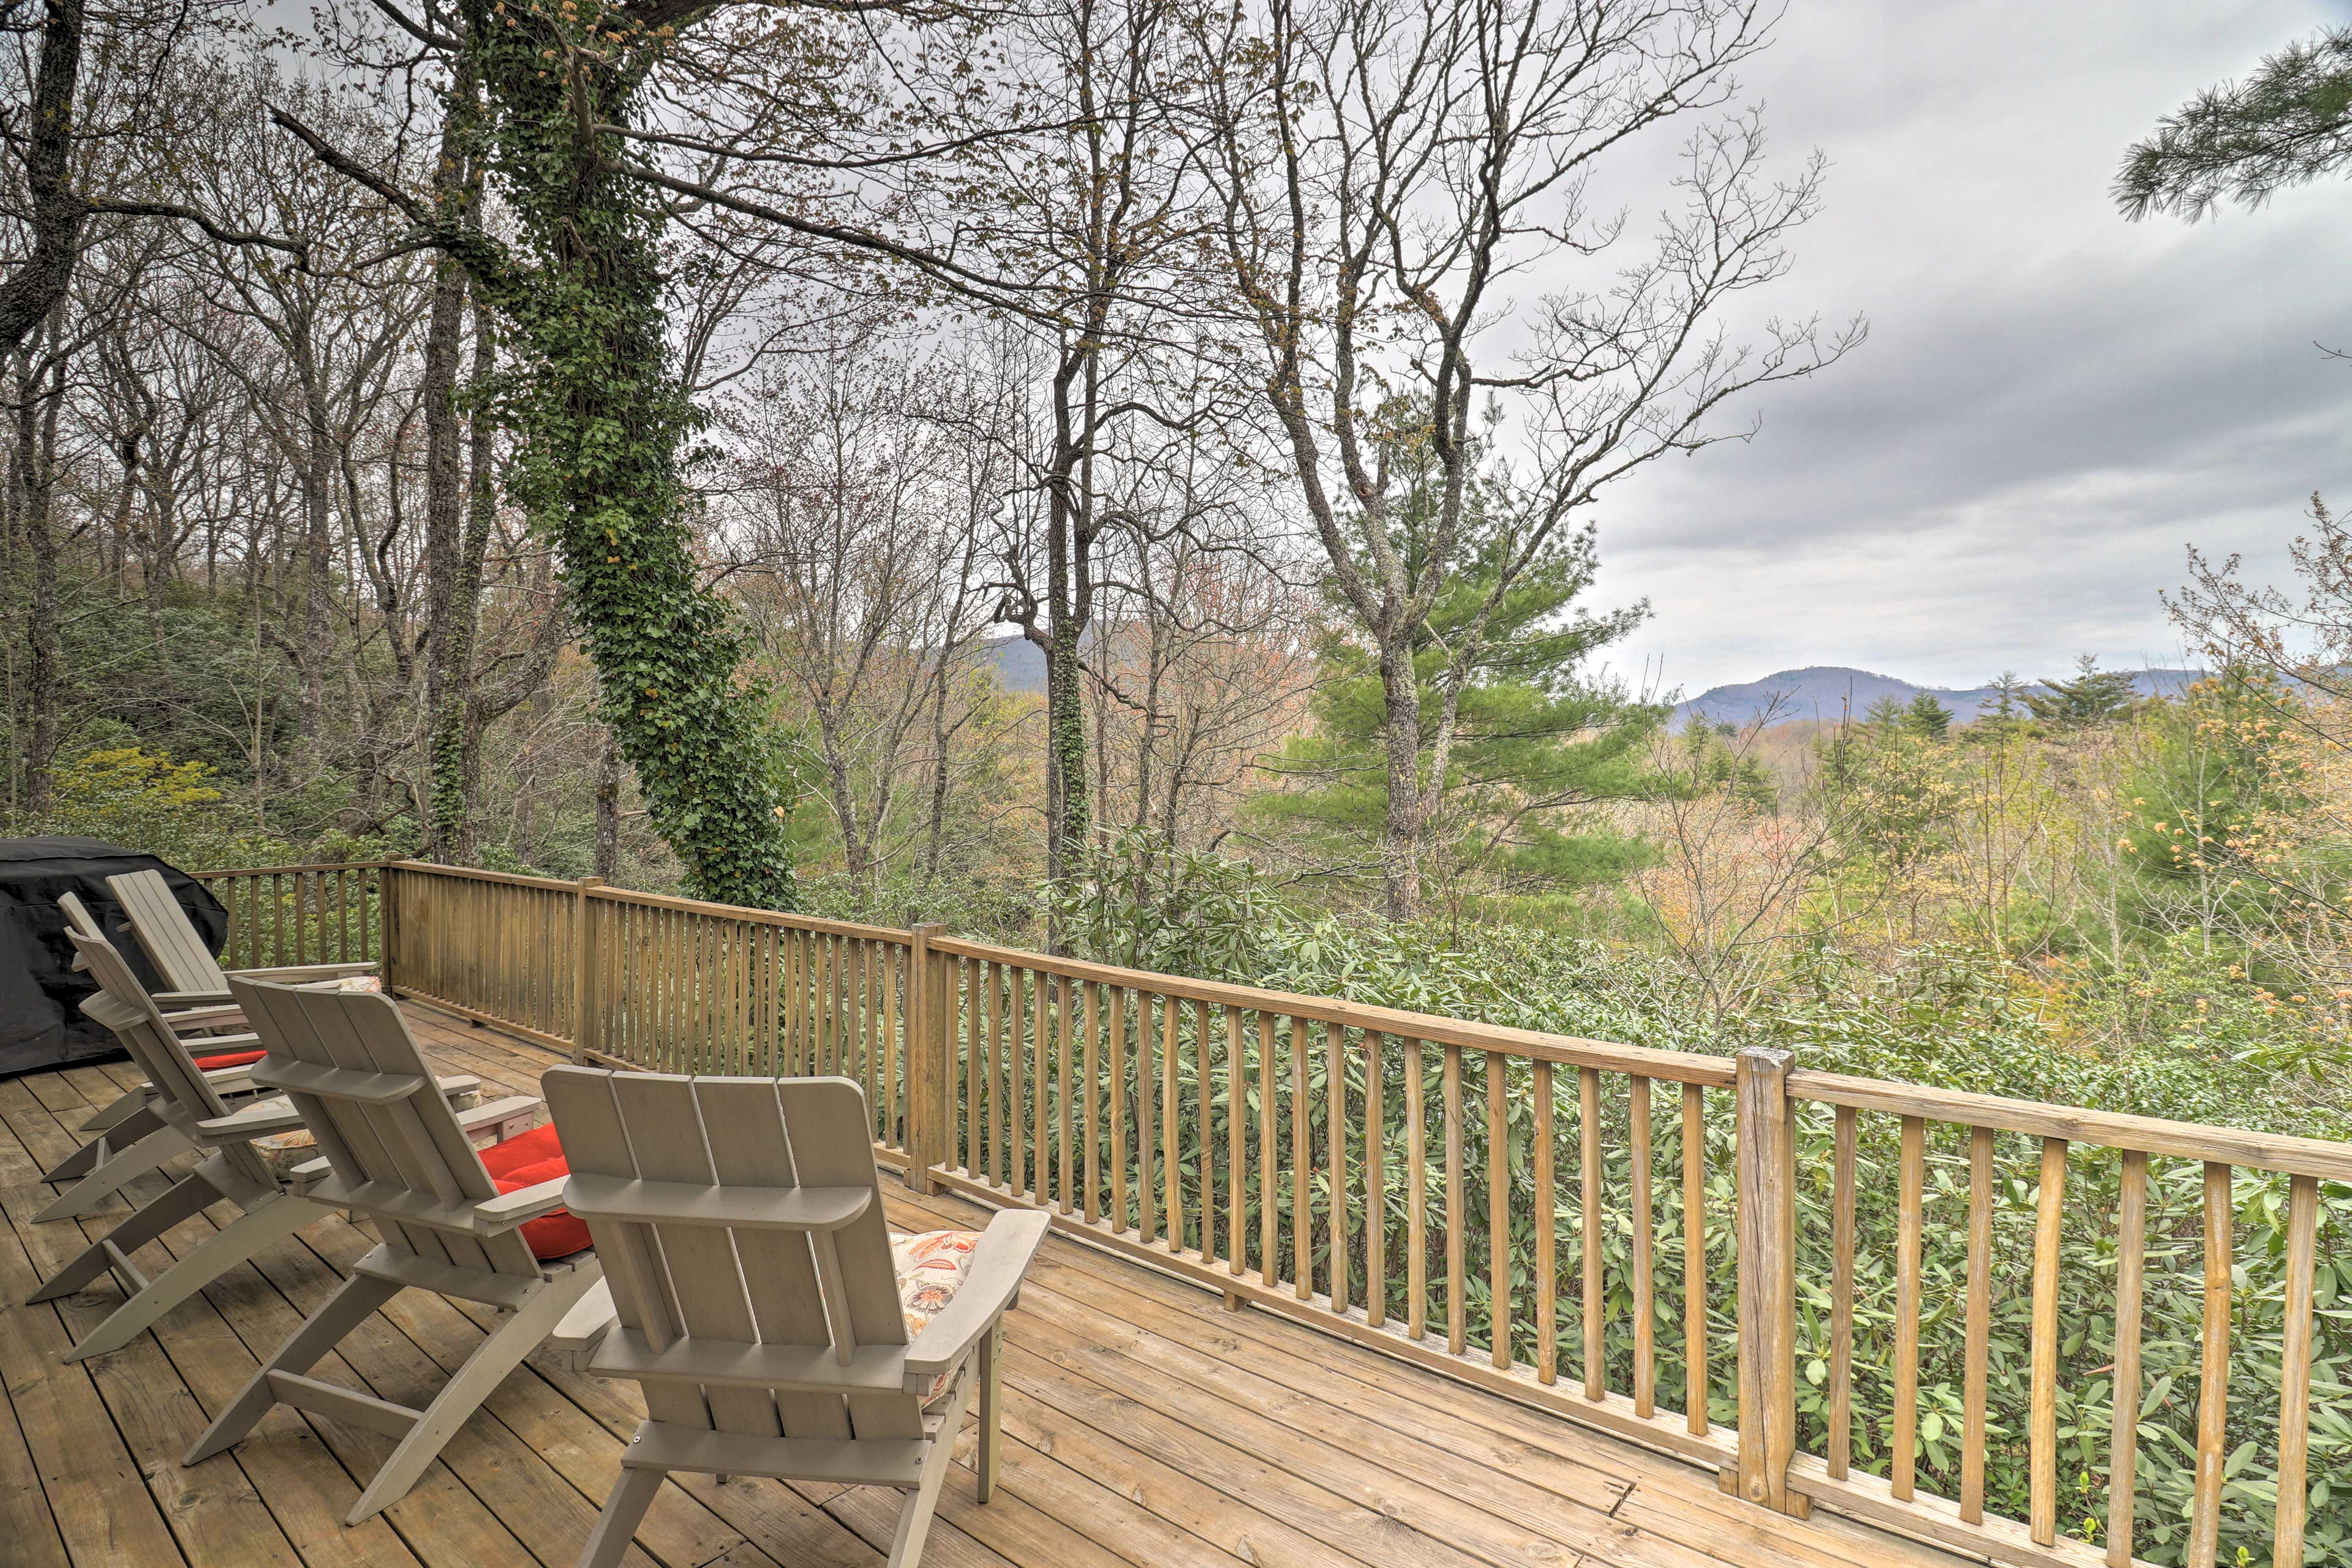 Lake Toxaway Vacation Rental Home   4BR   4BA   2,500 Sq Ft   Stairs Required